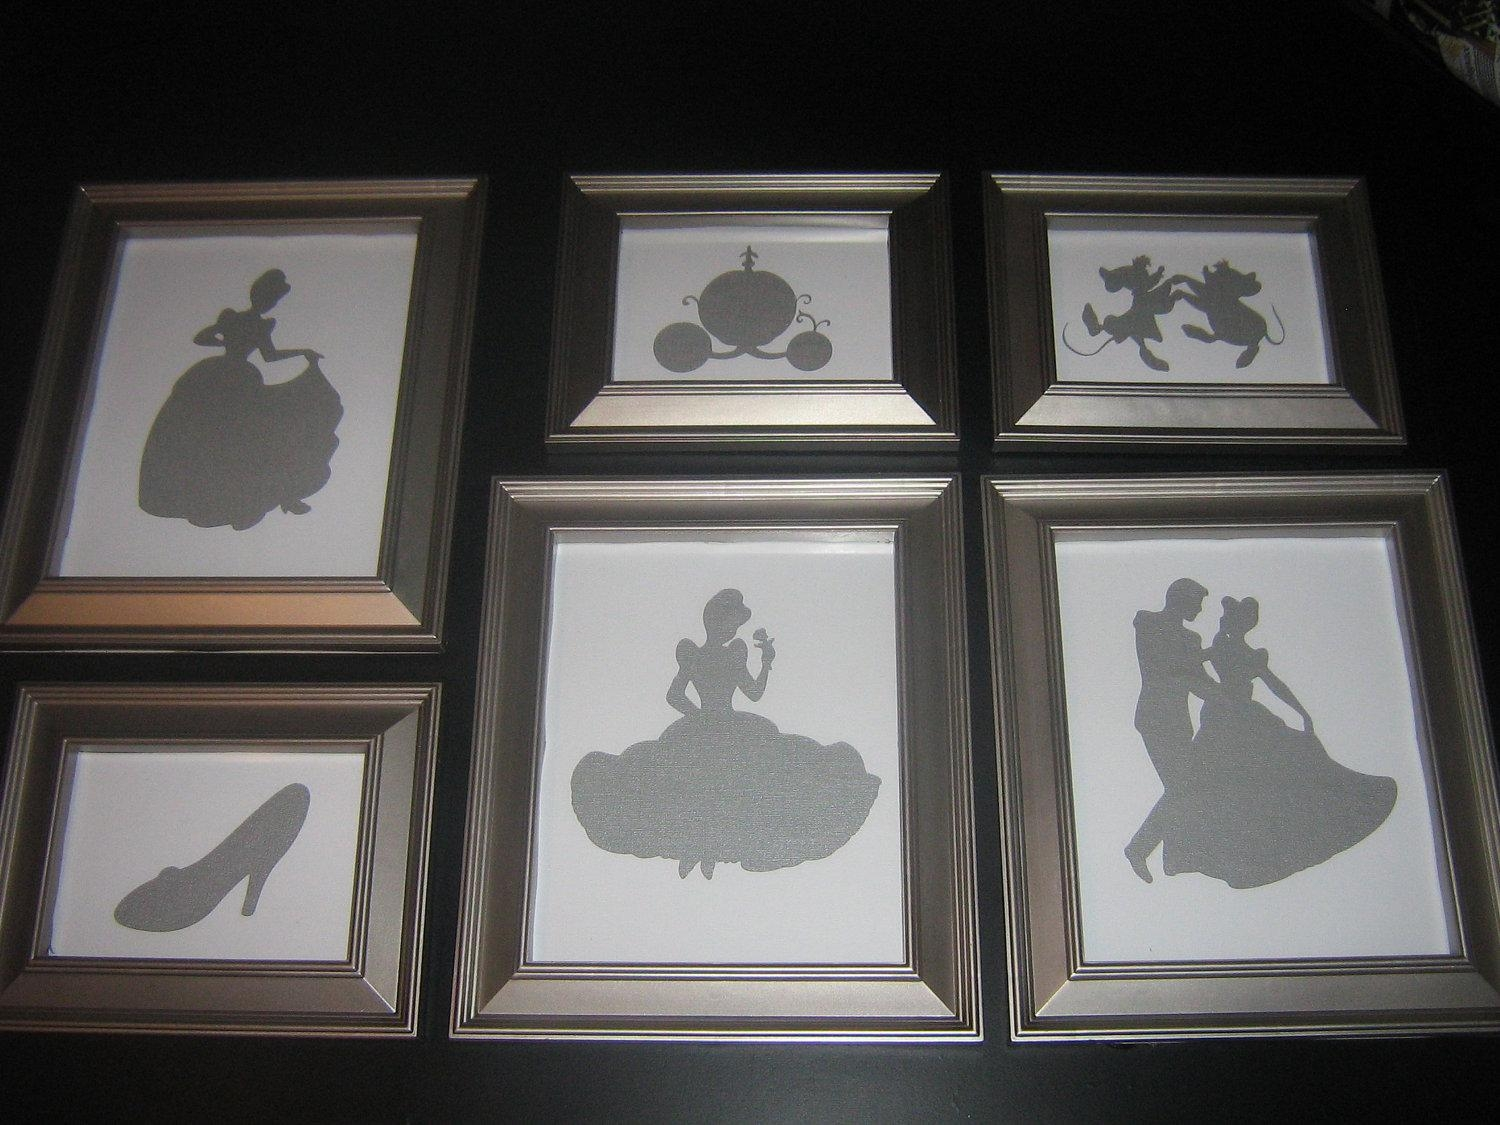 Framed Nursery Art Disney Princess Silhouette Cinderella Within Disney Princess Framed Wall Art (Image 17 of 20)